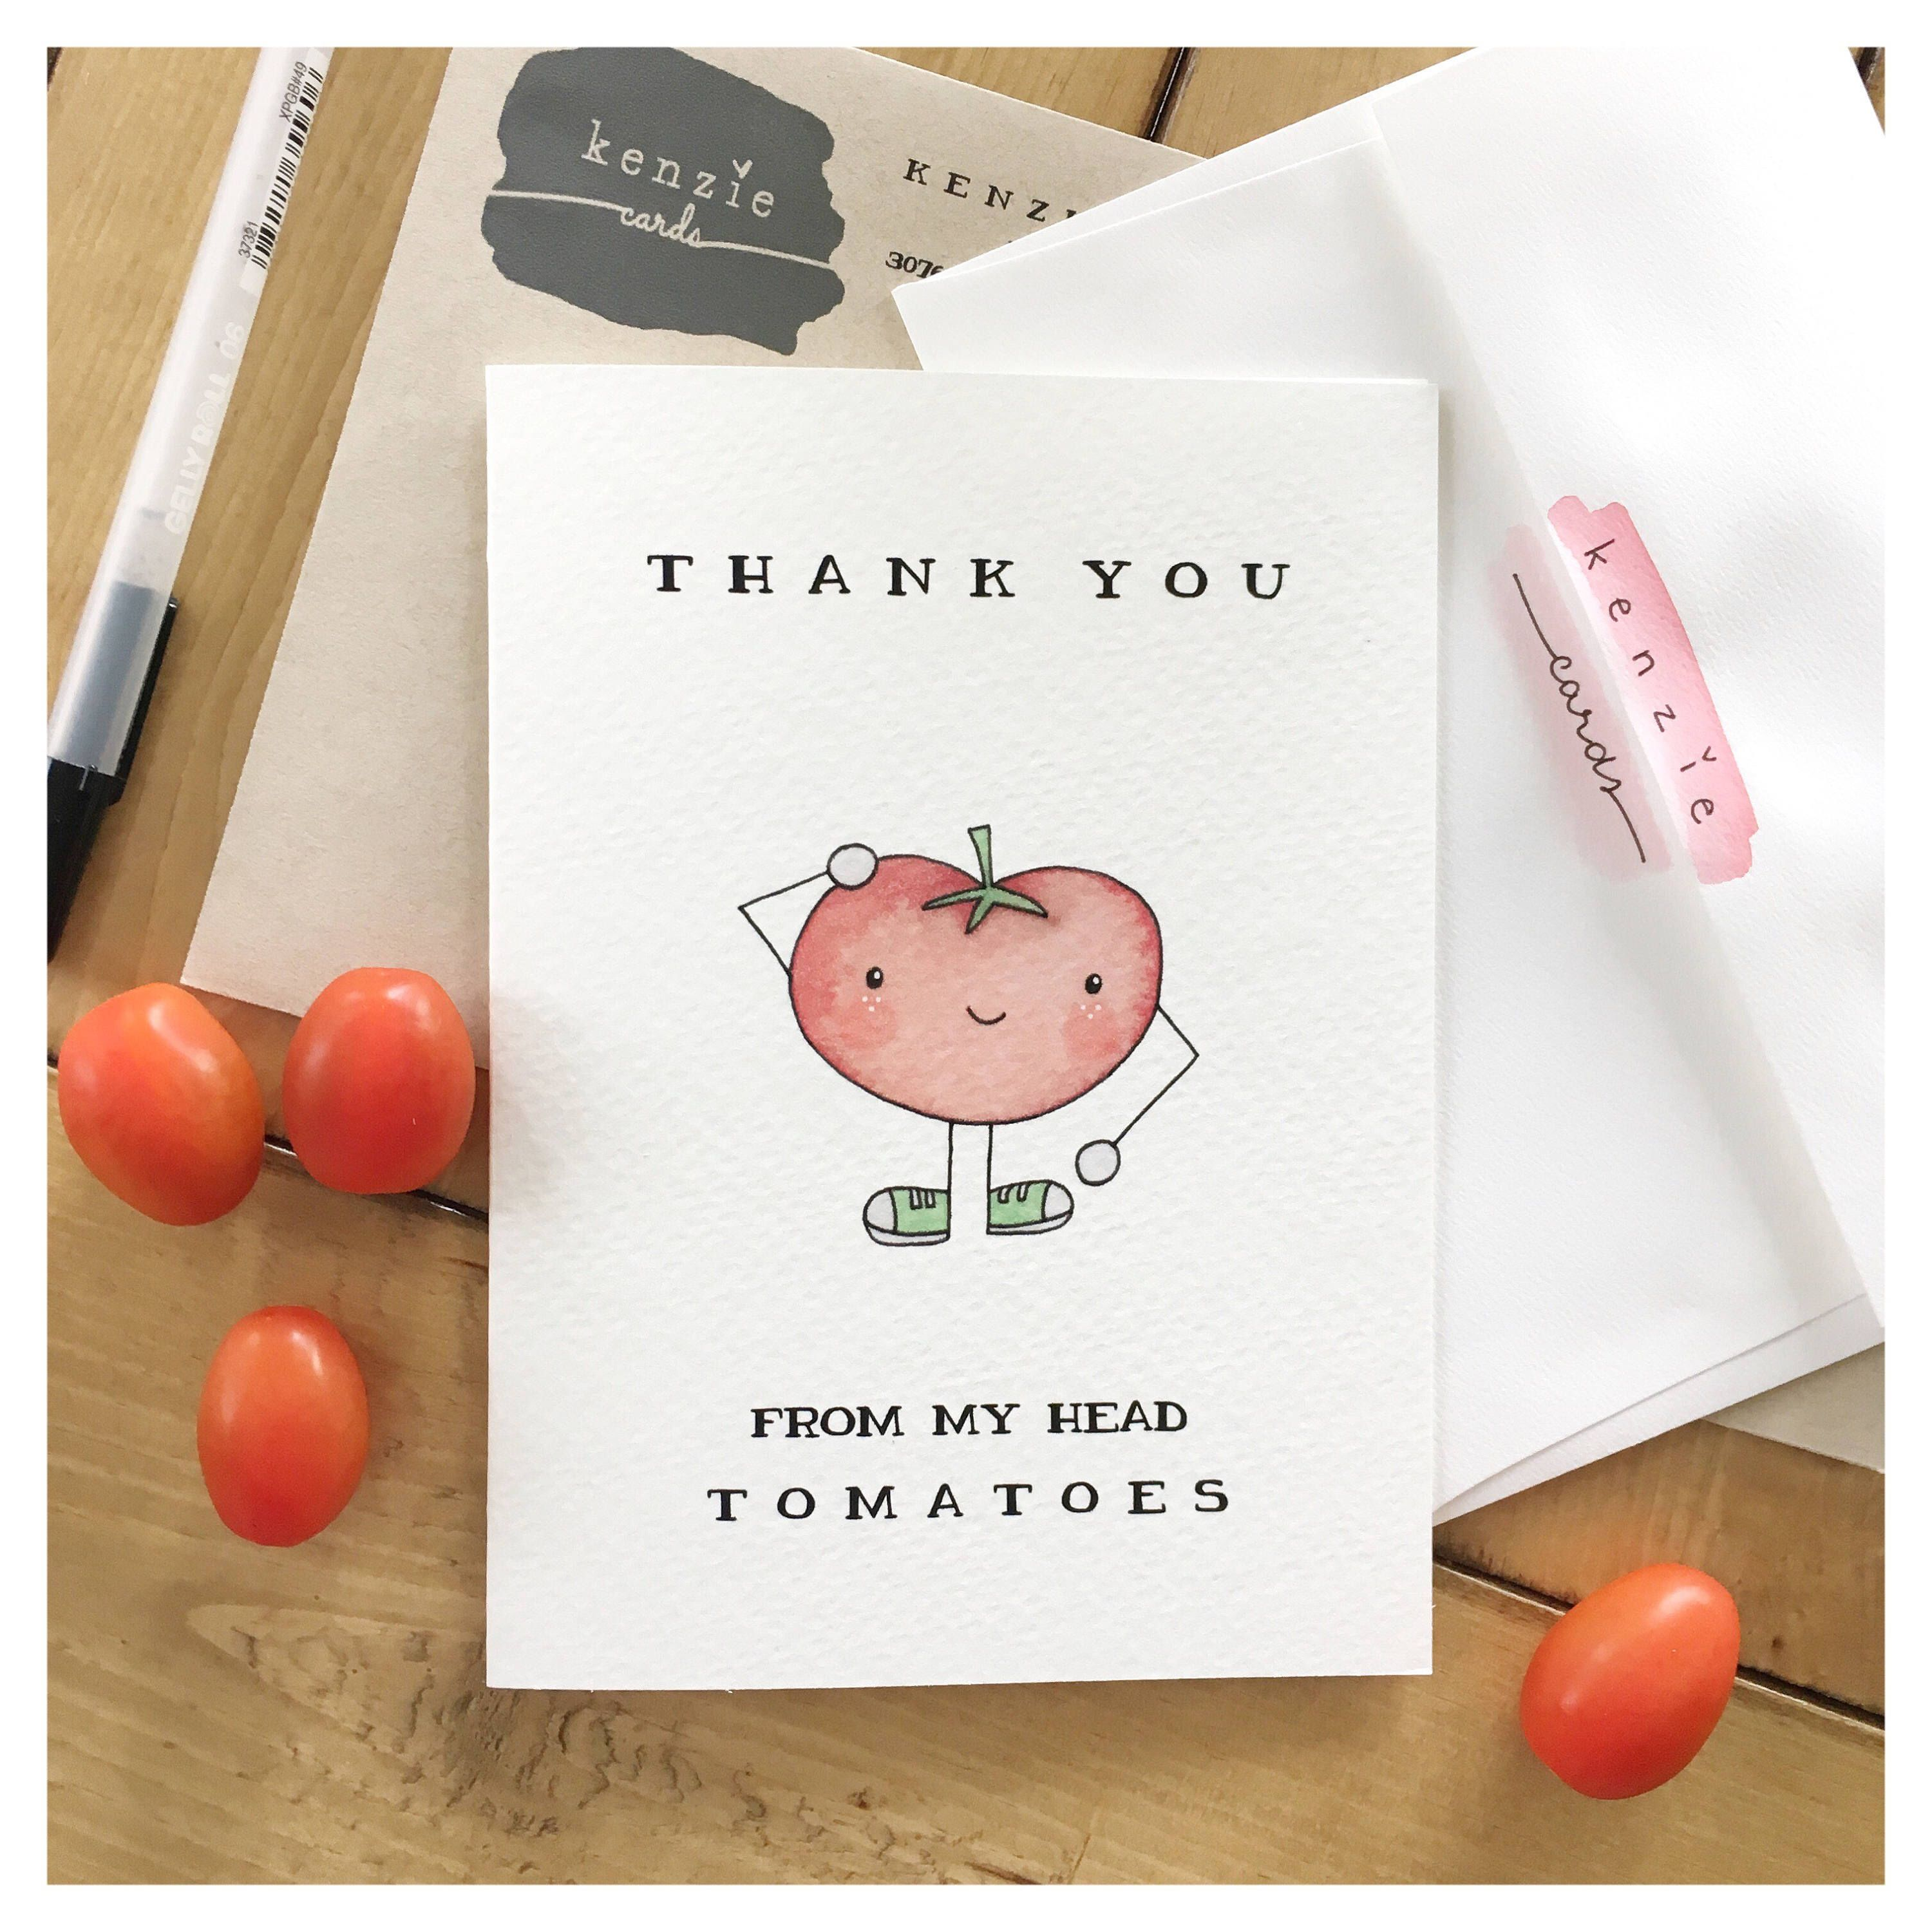 Vegetable card tomatoe card vegetable decor vegetable pun funny greetings cards thank you for your support vegetable card tomatoe decor pun punny greeting gift vegan kristyandbryce Image collections